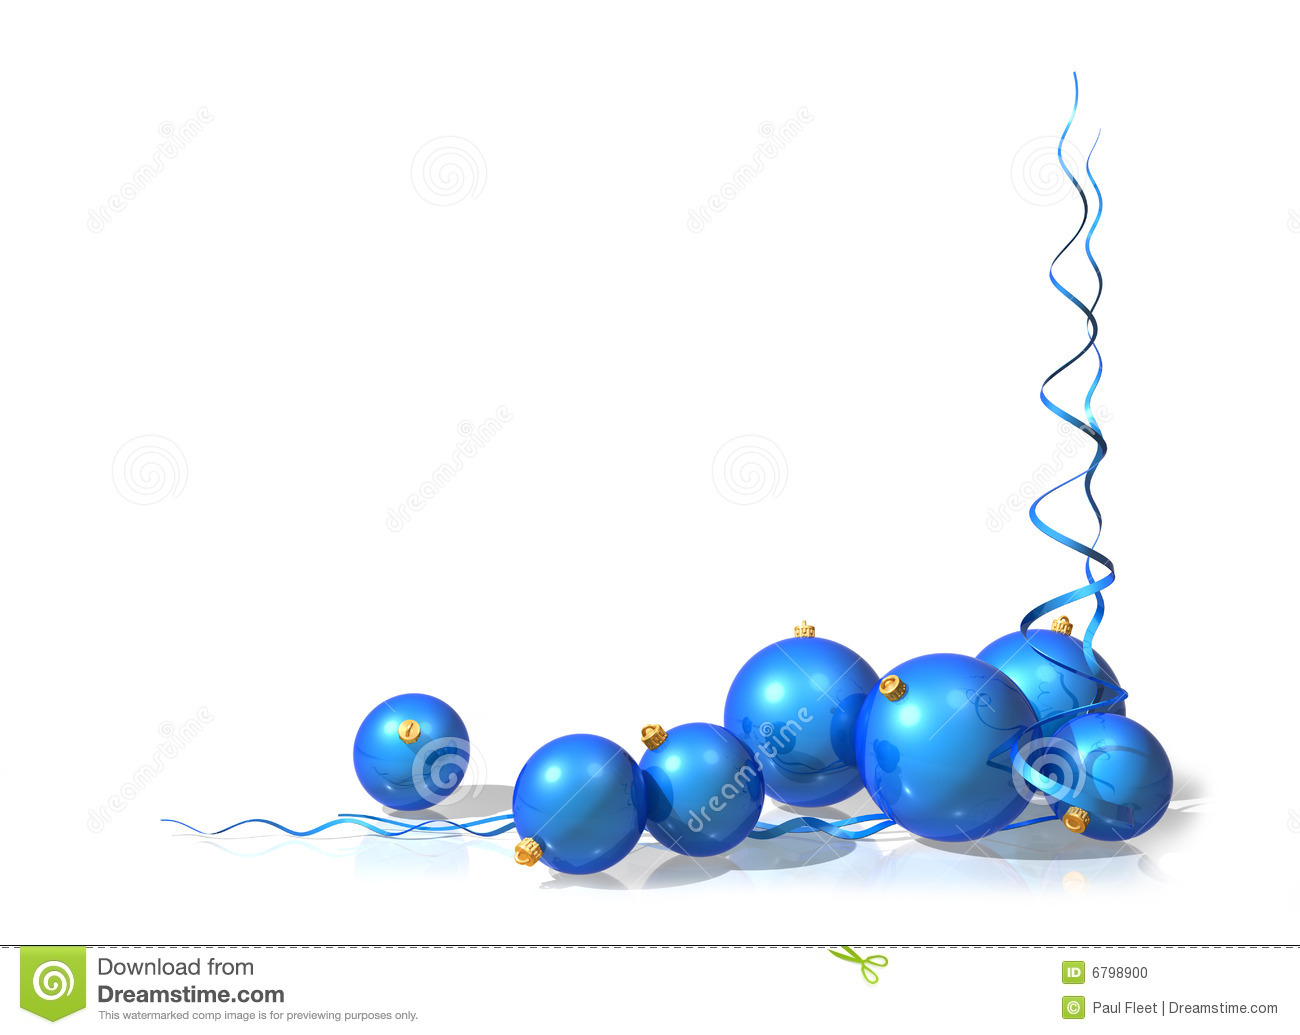 blue christmas decorations illustration of a christmas motif using blue baubles and streamers royalty free - Blue Christmas Decorations